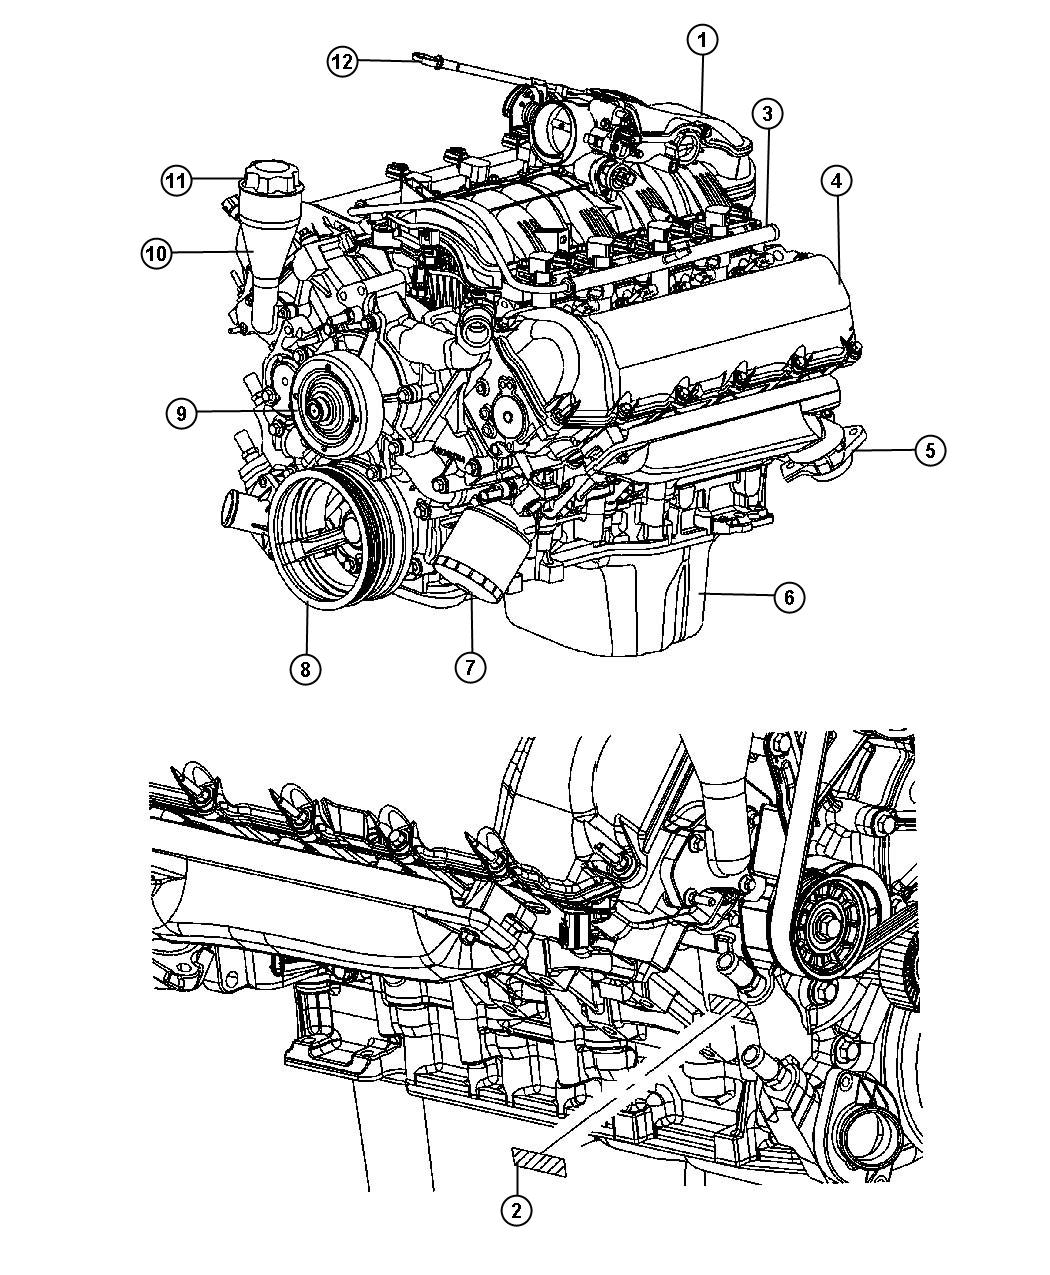 Chevy 5 7l Engine Diagram